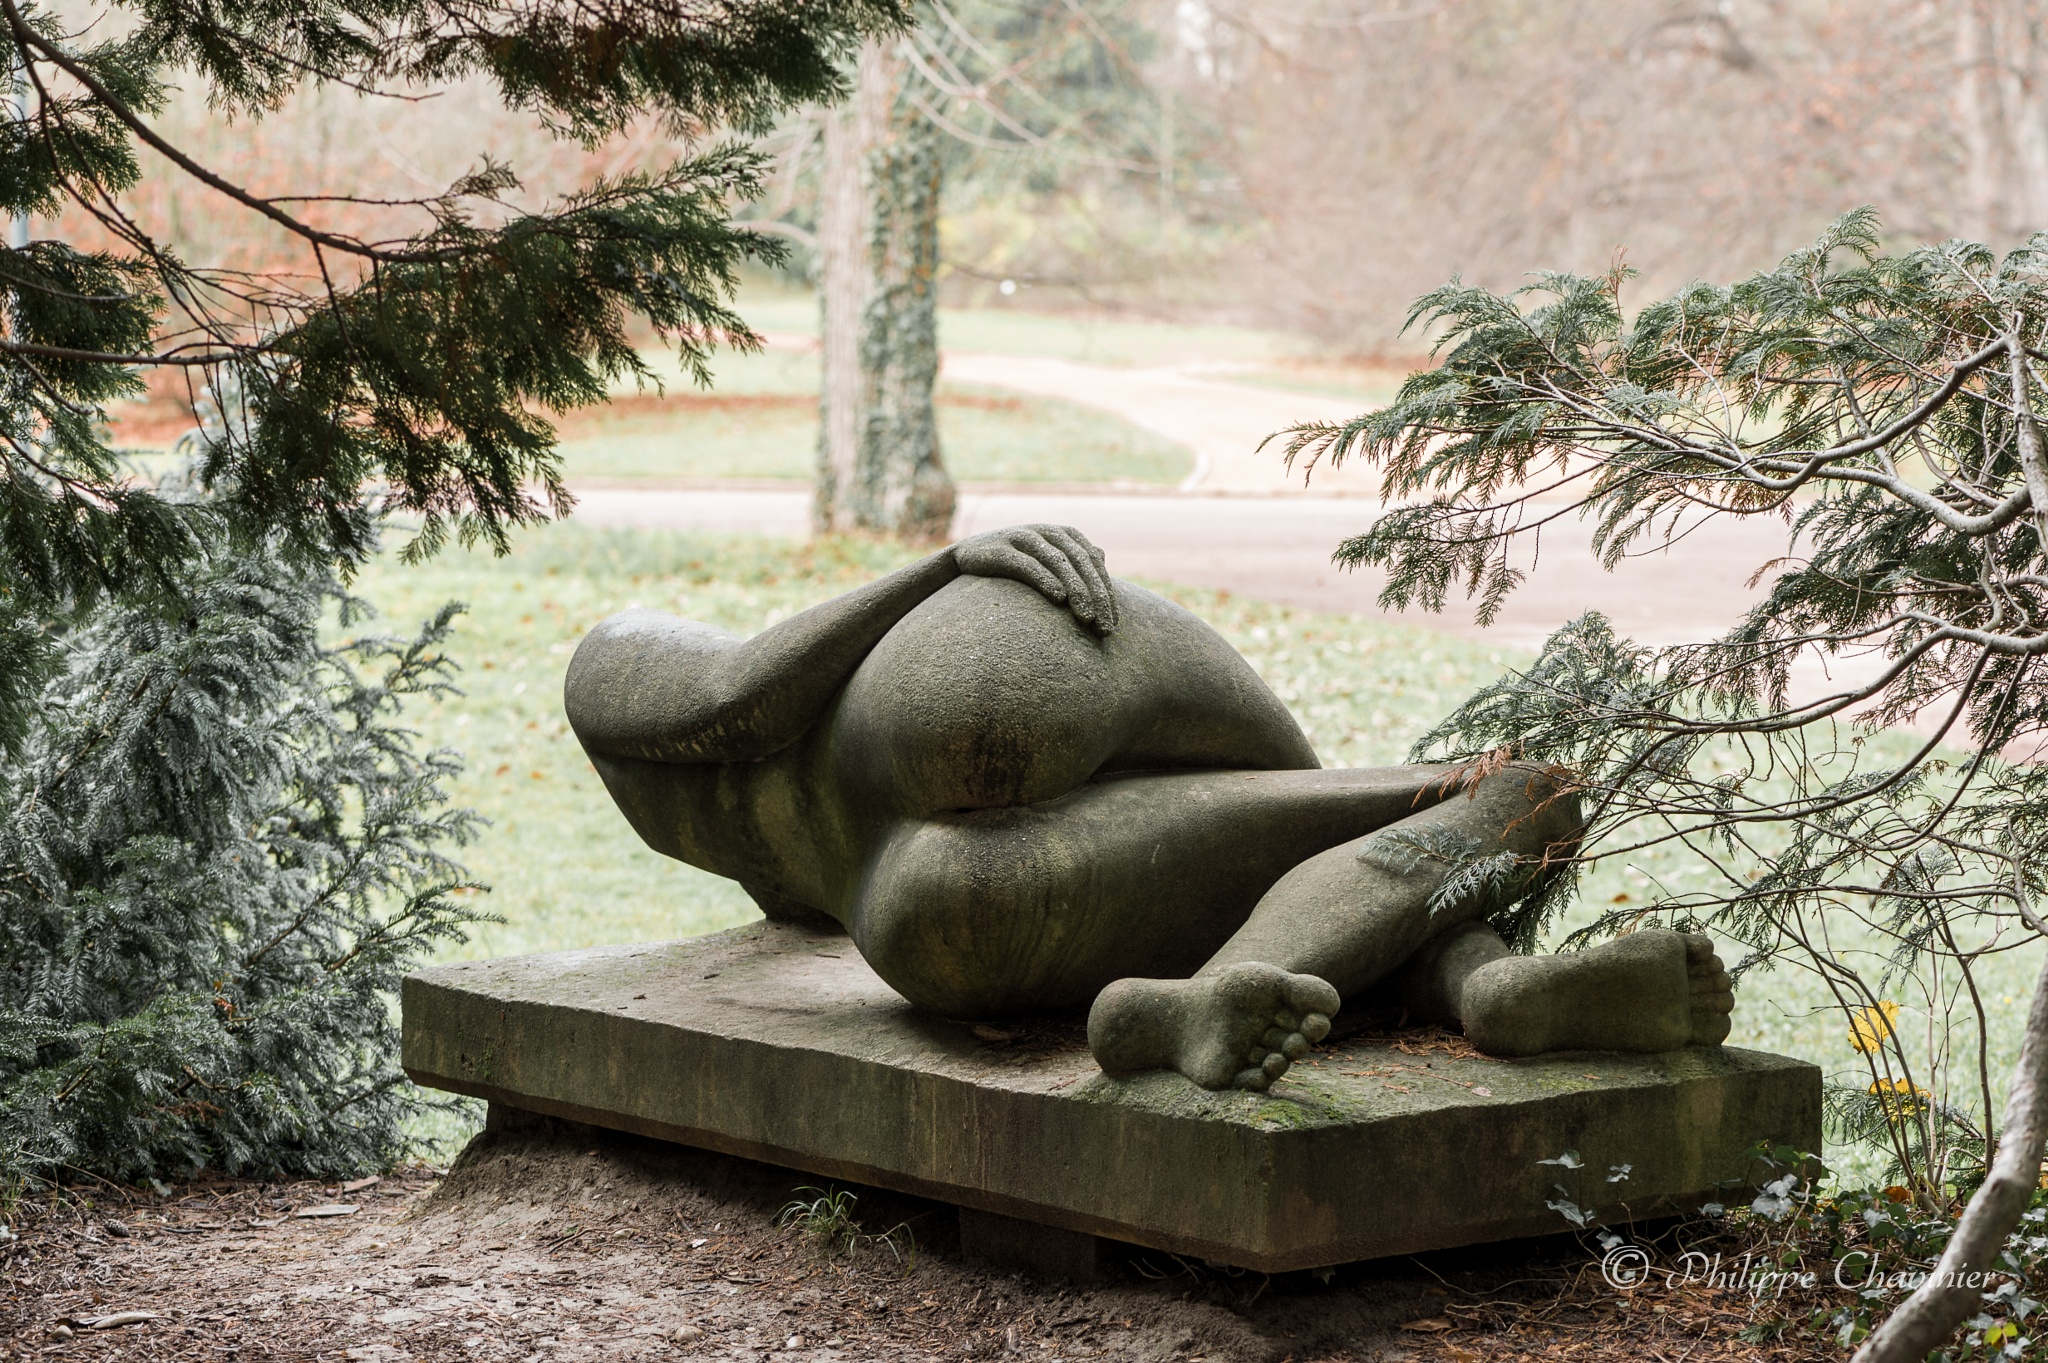 What a pity it's made of stone ! by Philippe Chavinier